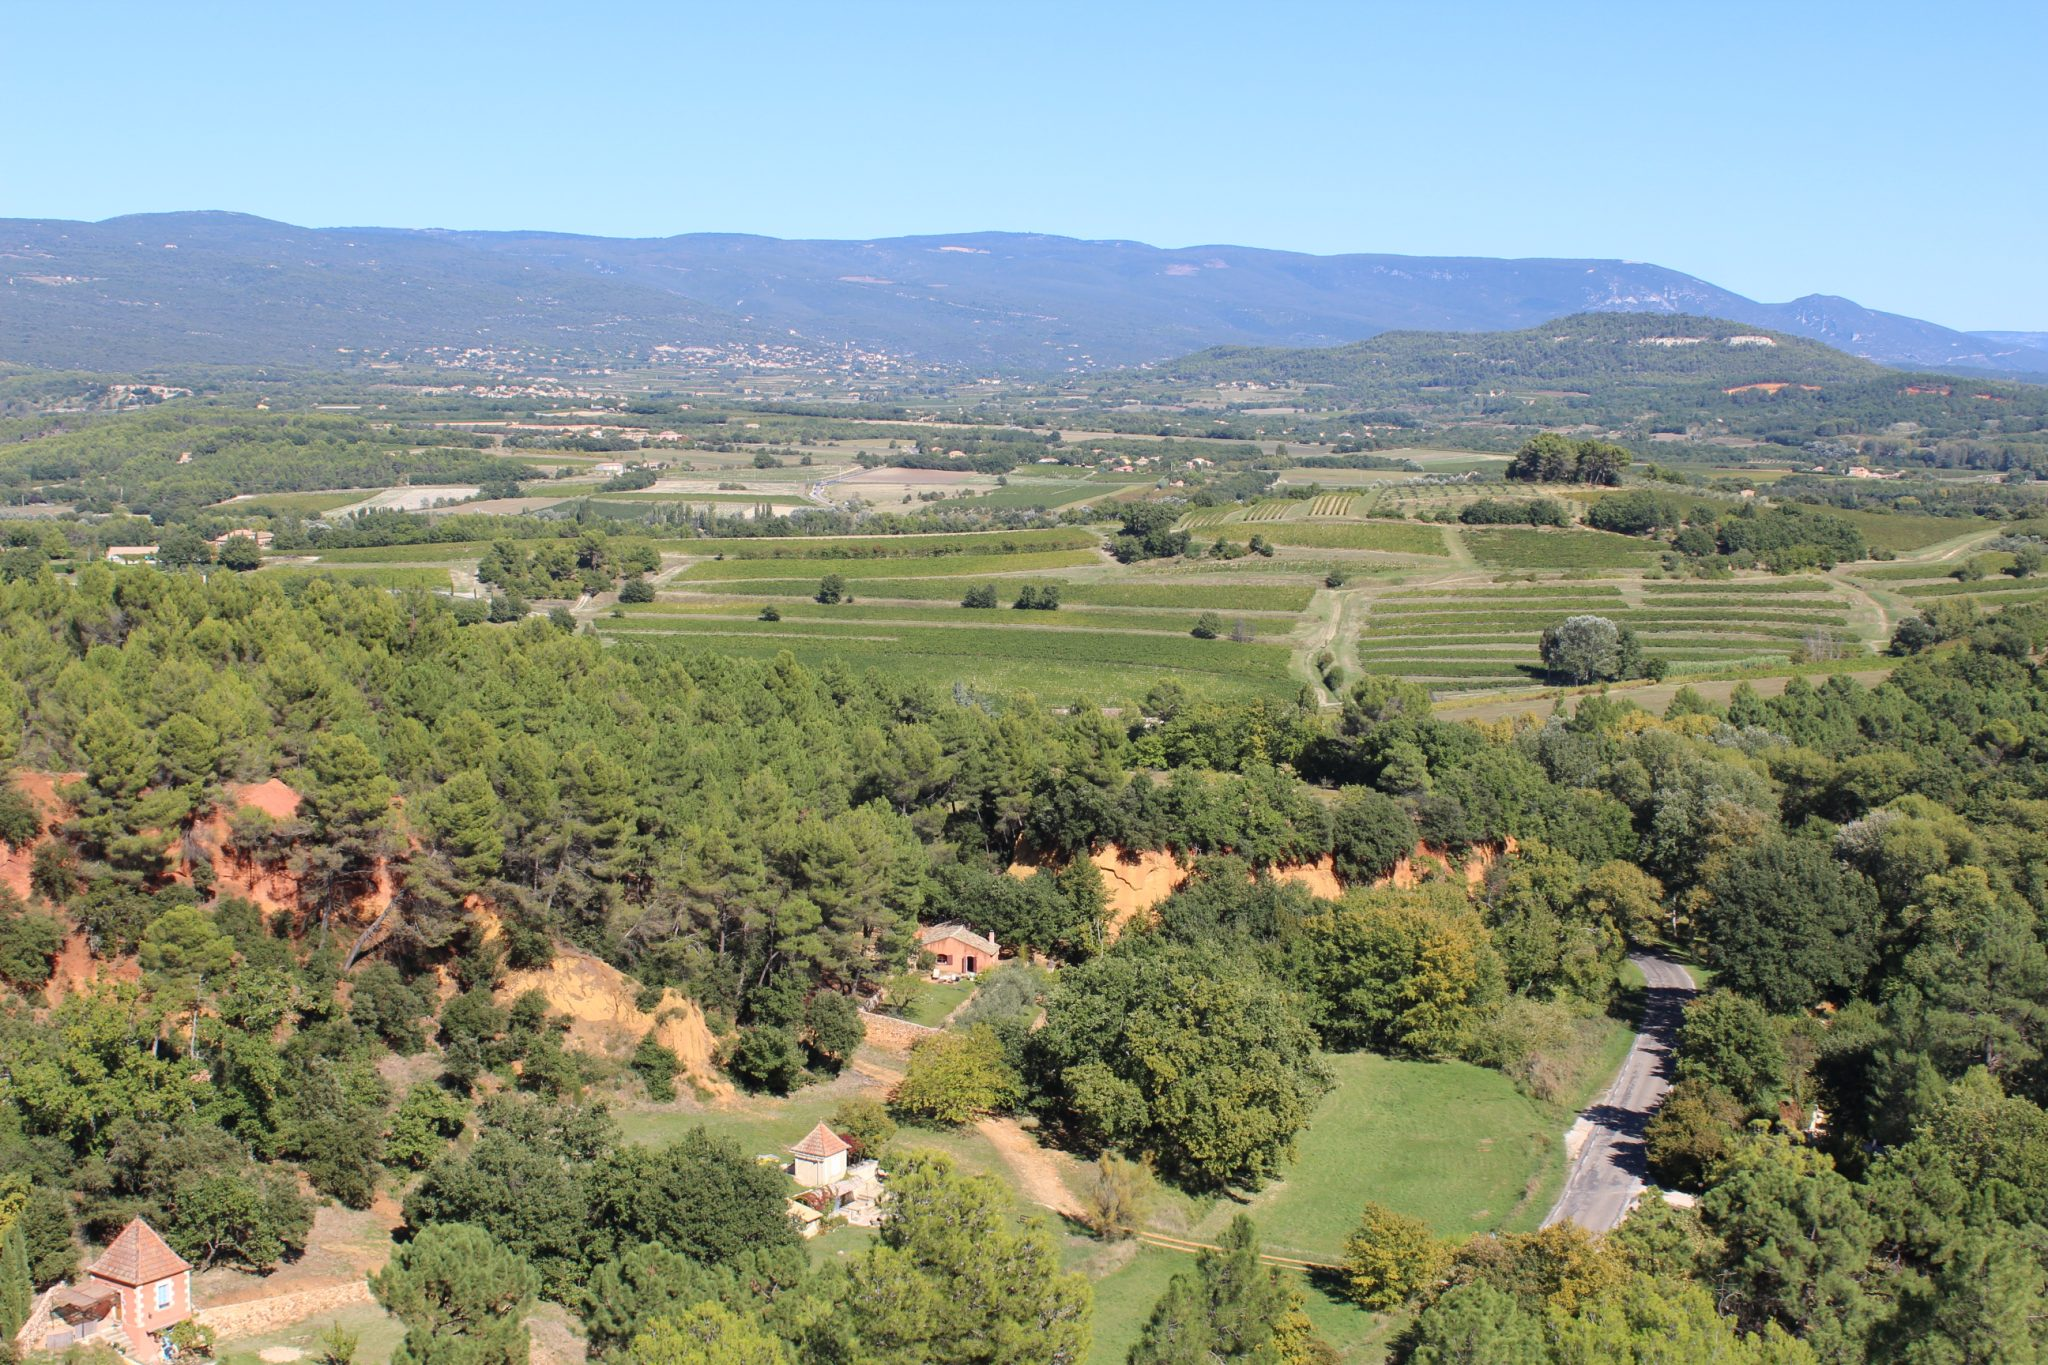 View from the top of Roussillon